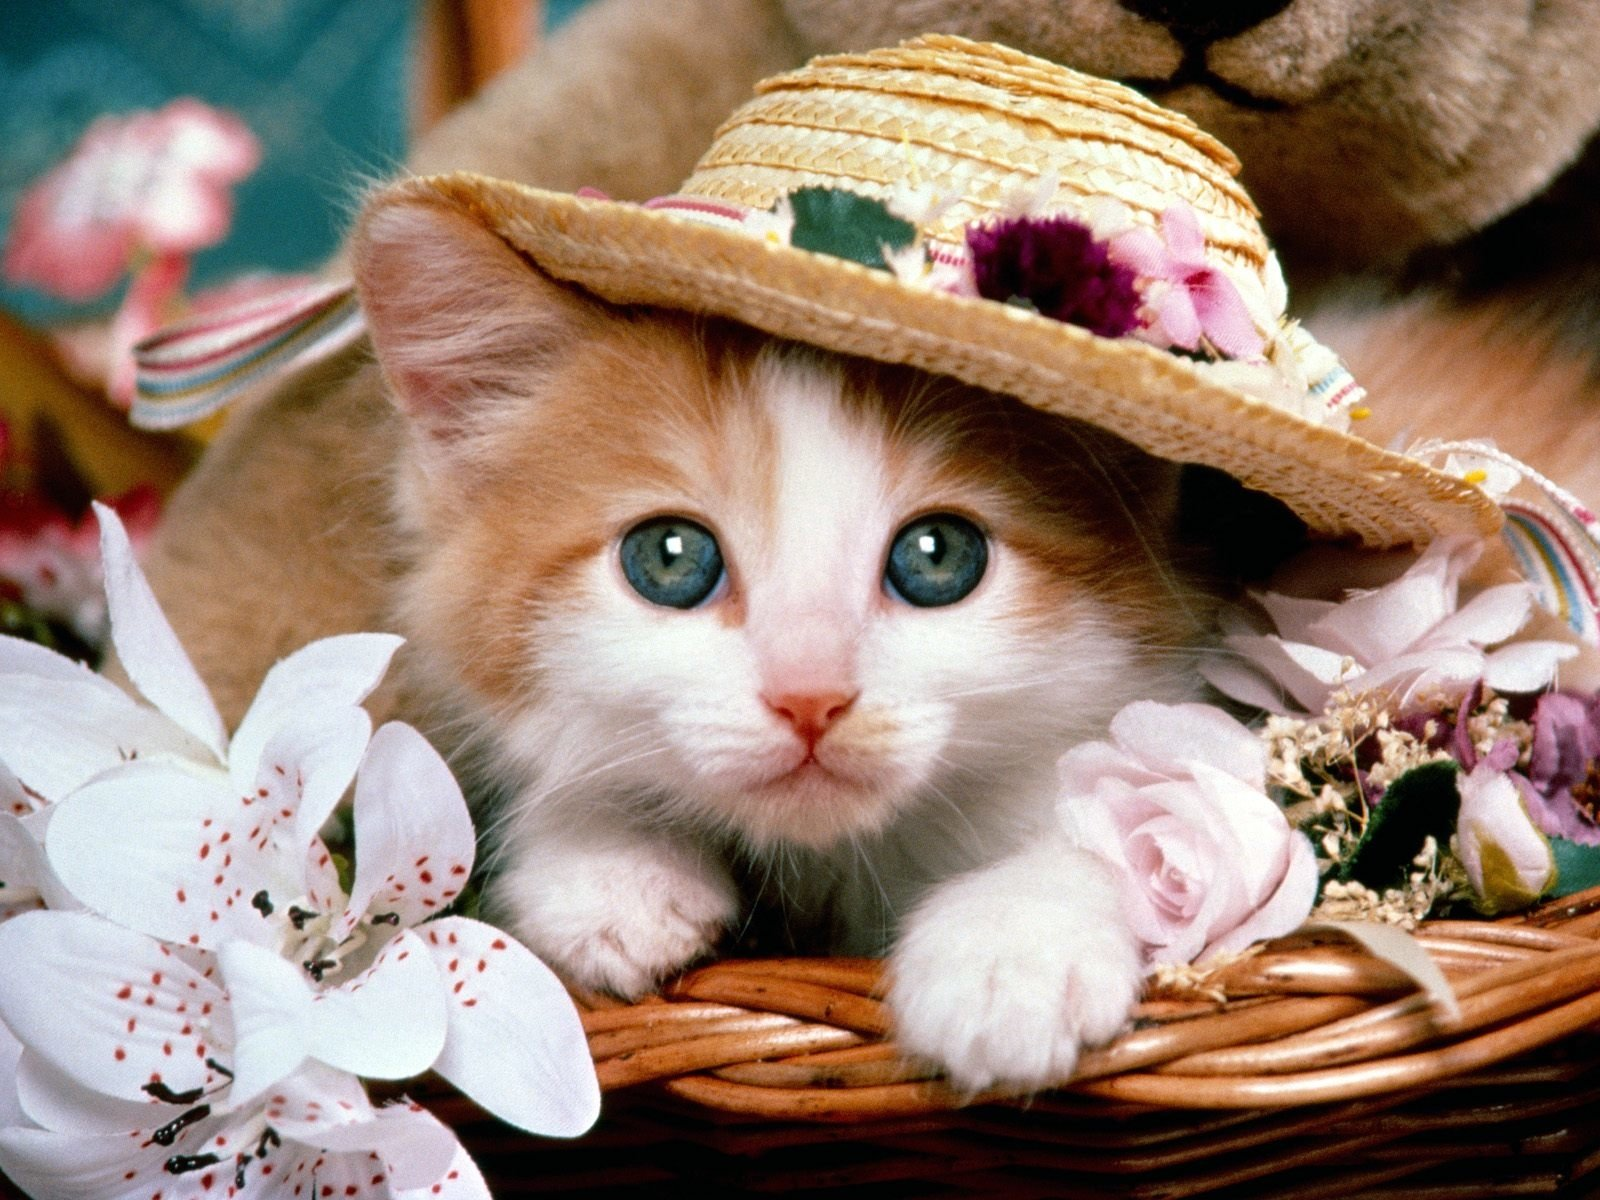 Animal - Cat  Animal Kitten Hat Flower Teddy Bear Basket Wallpaper